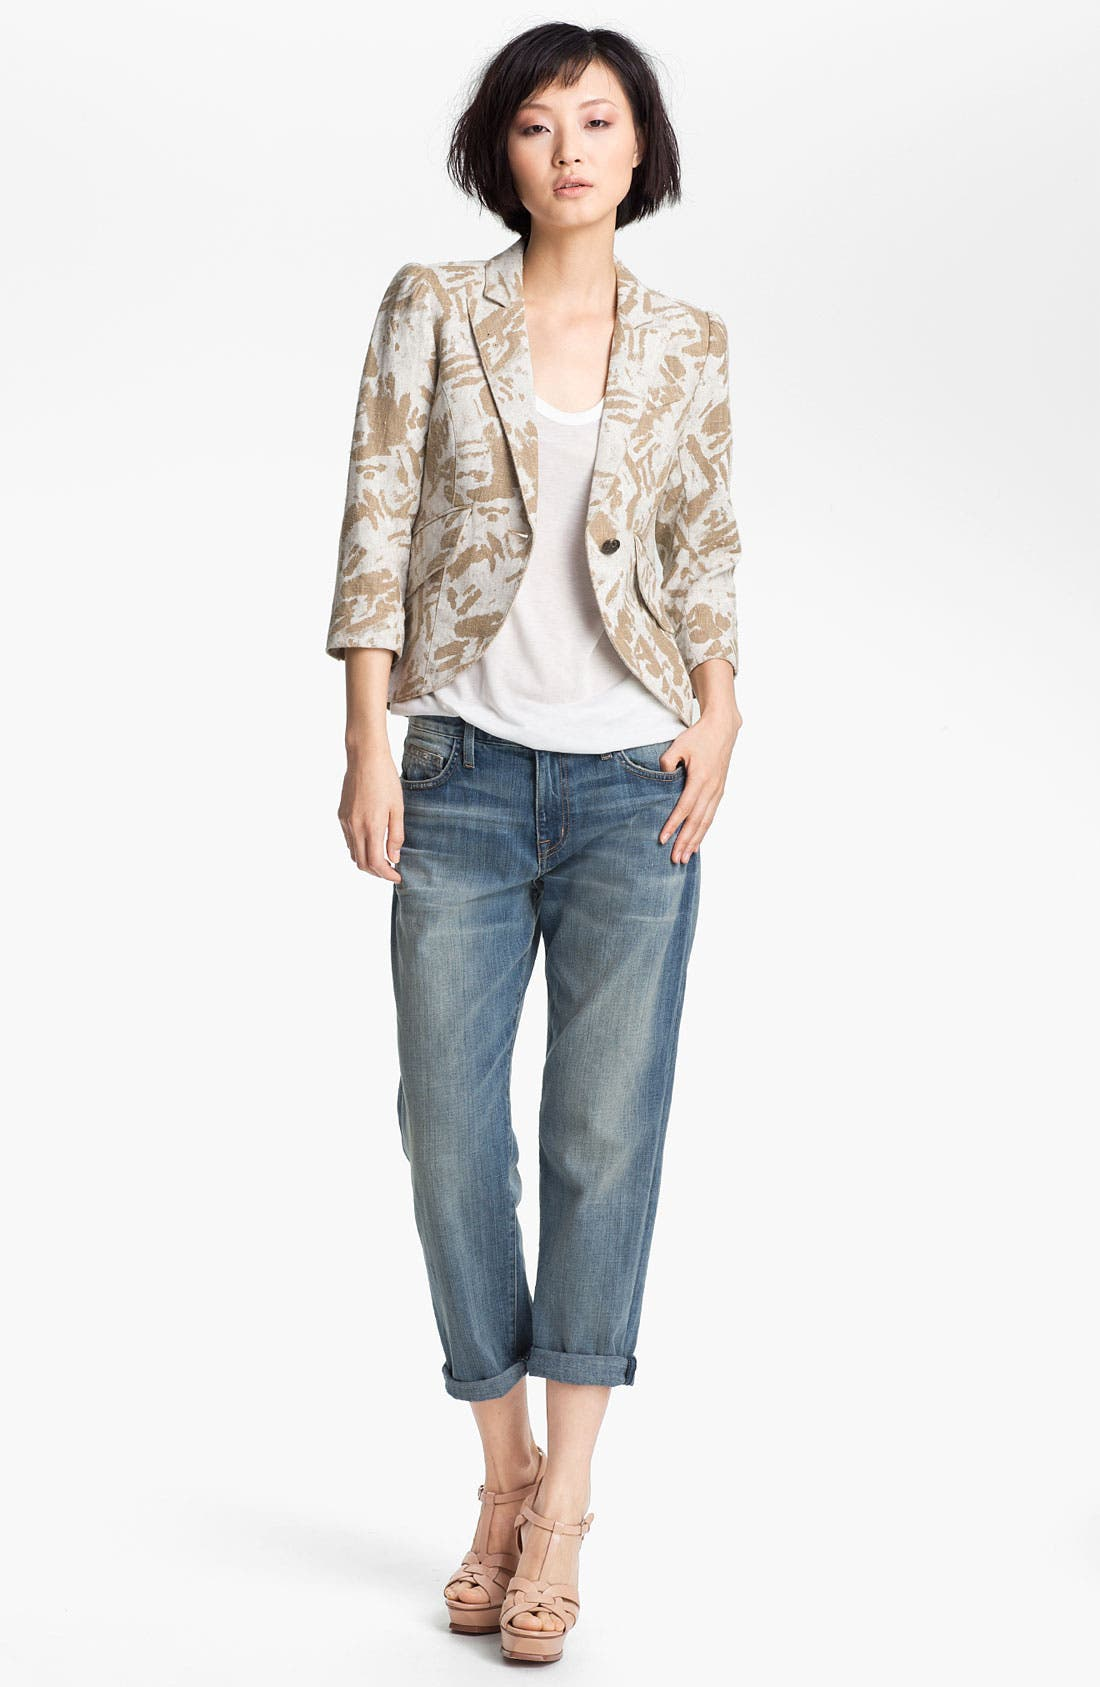 Alternate Image 1 Selected - Smythe Graffiti Print Puff Sleeve Blazer